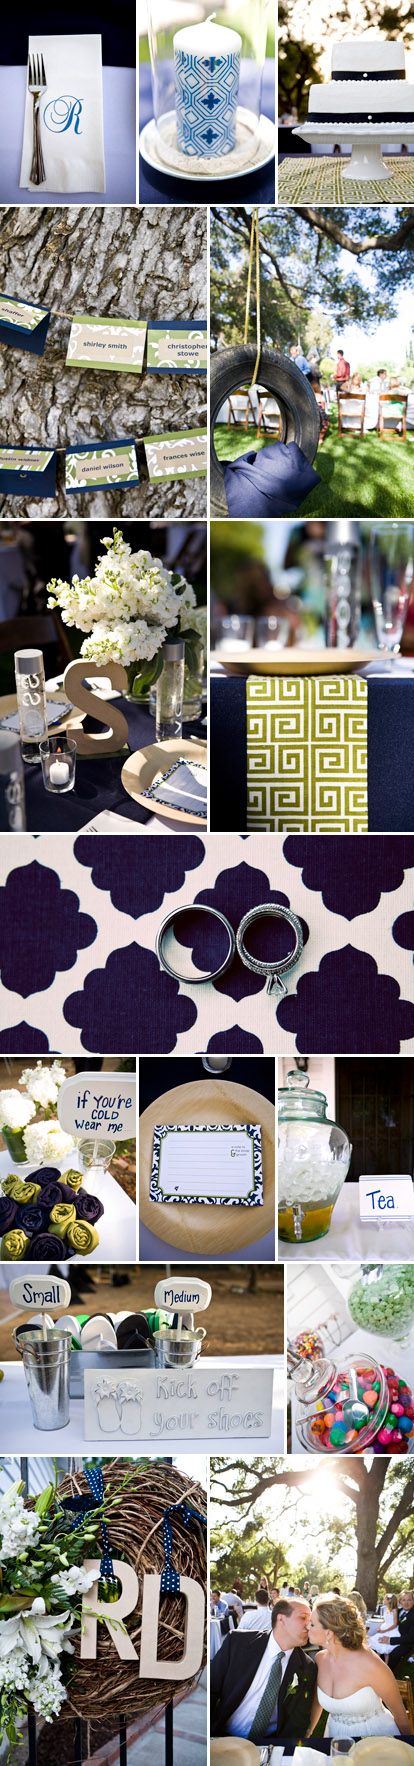 California backyard barbecue wedding reception, navy blue and emerald green wedding decor and favors, images by Jagger Photography